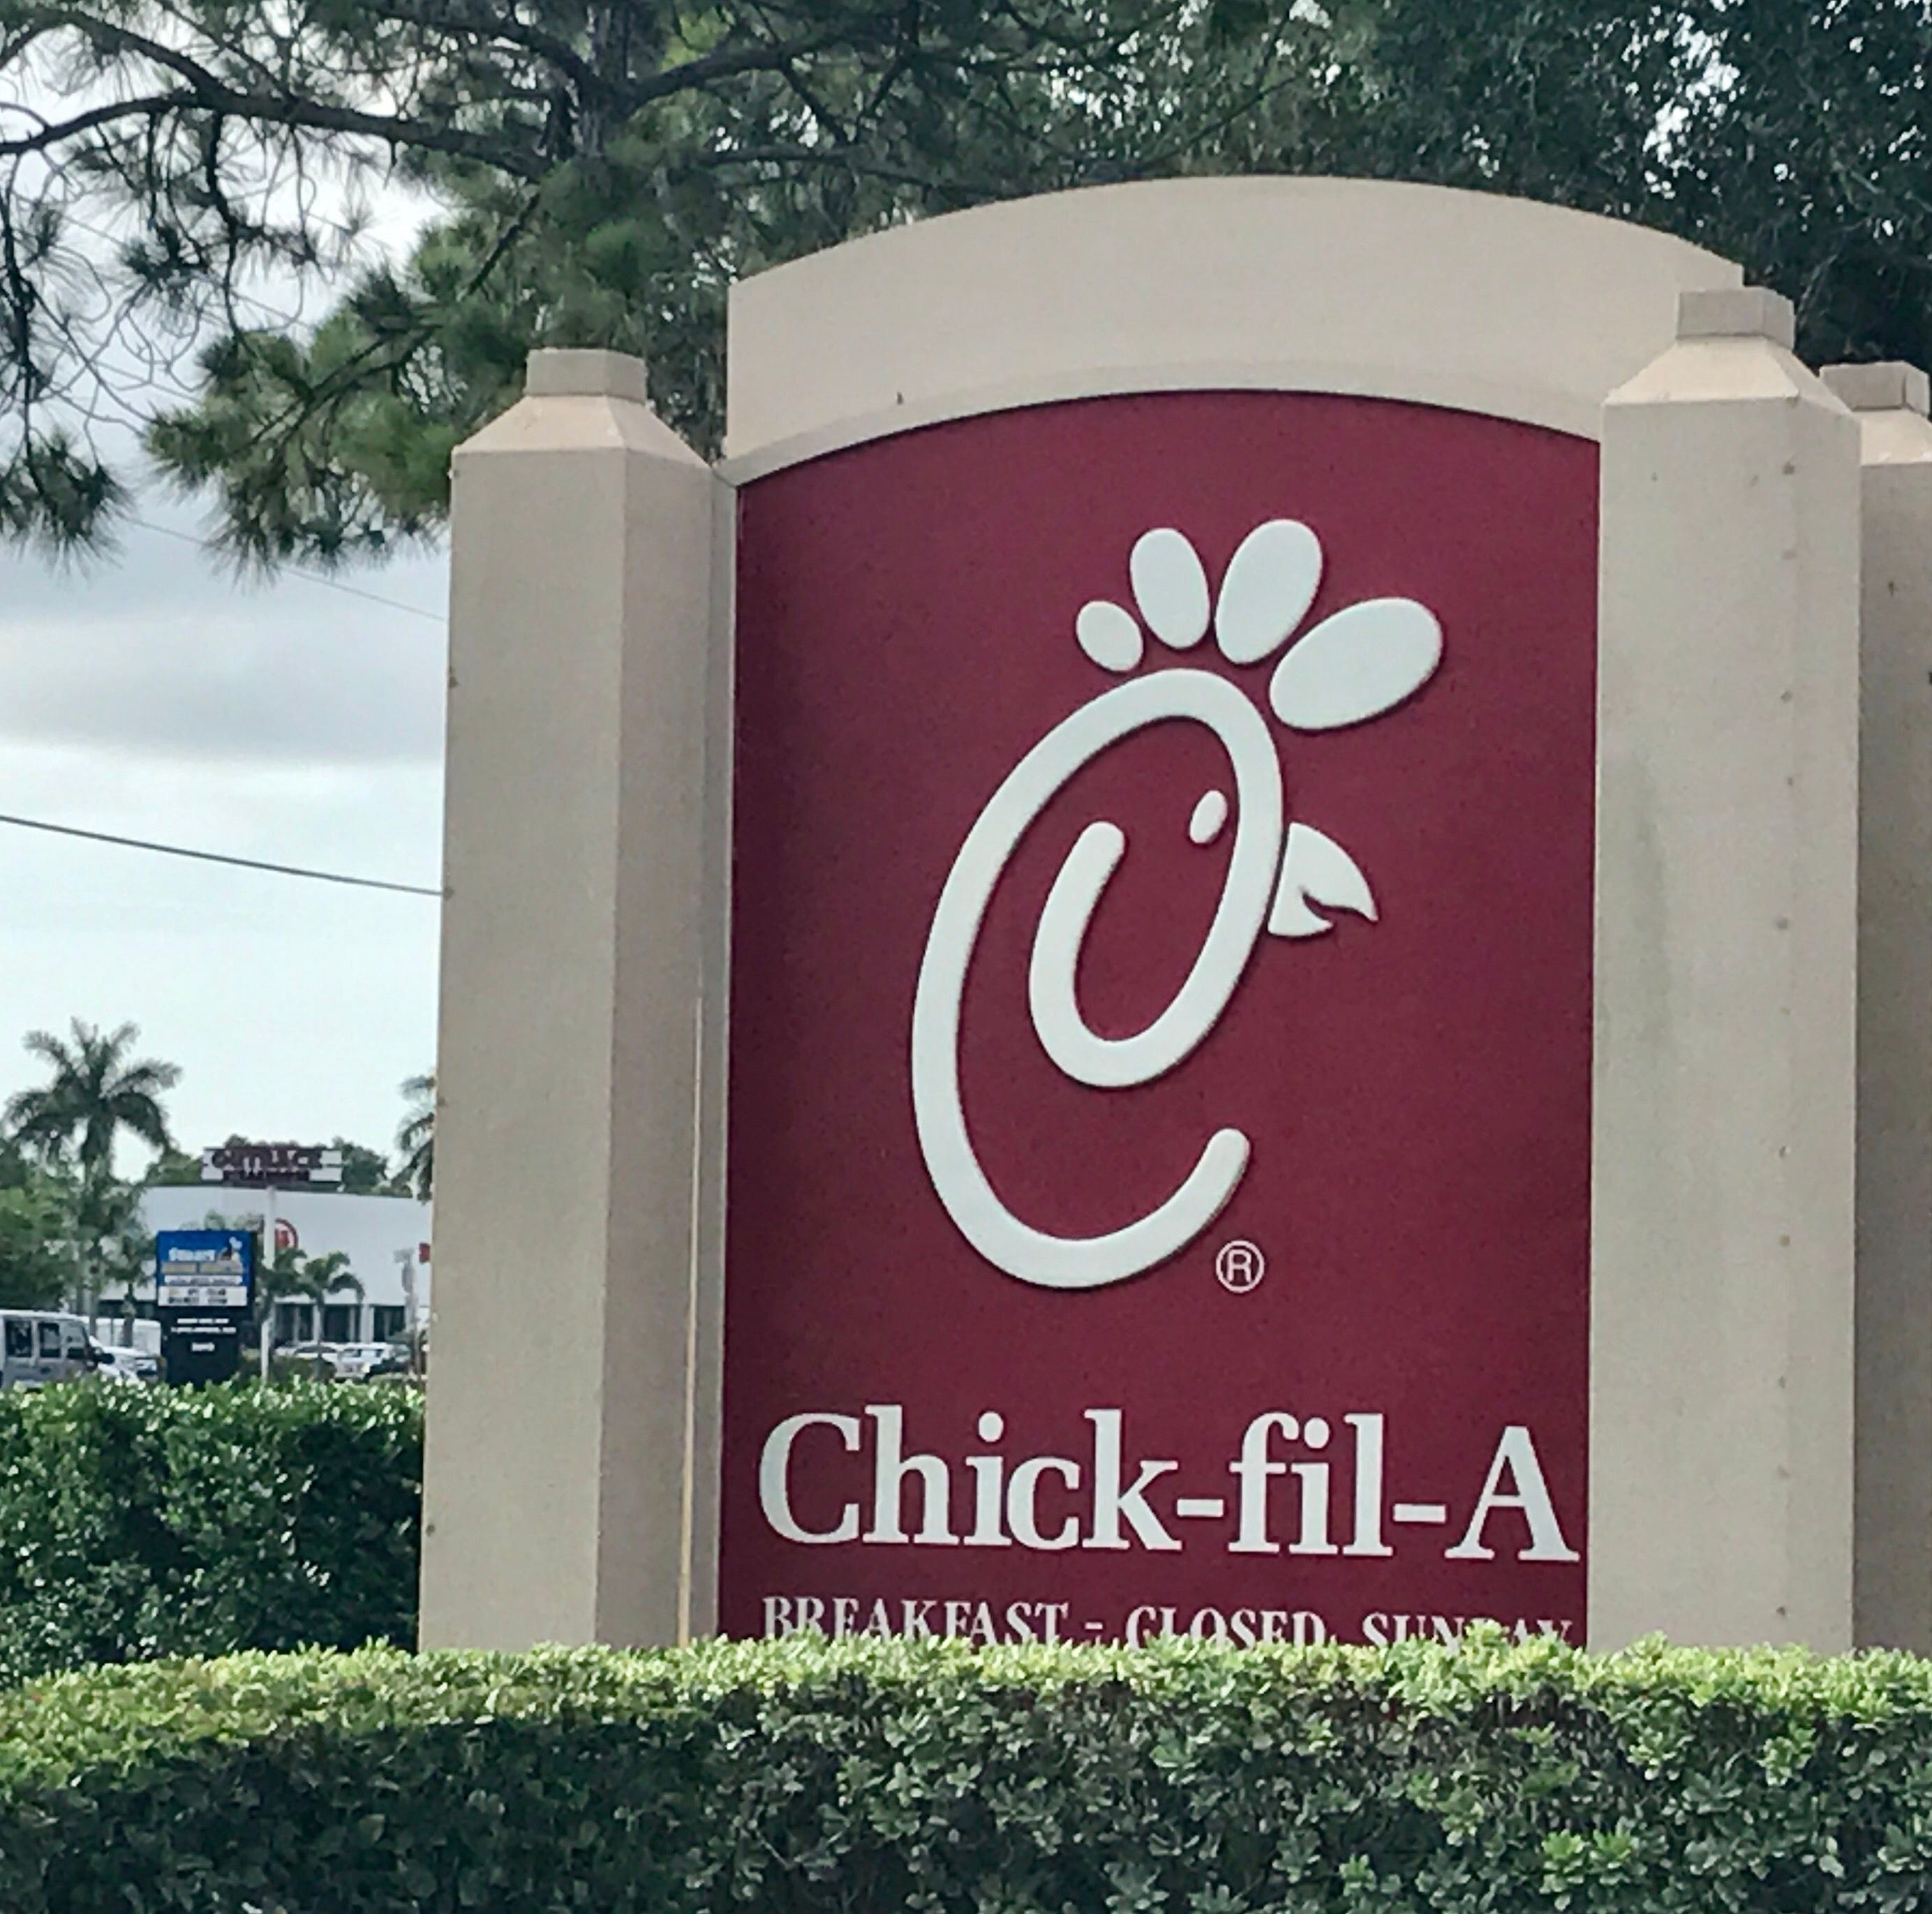 What's Brevard's favorite fast food? Chick-fil-A came out on top among 321 Flavor members